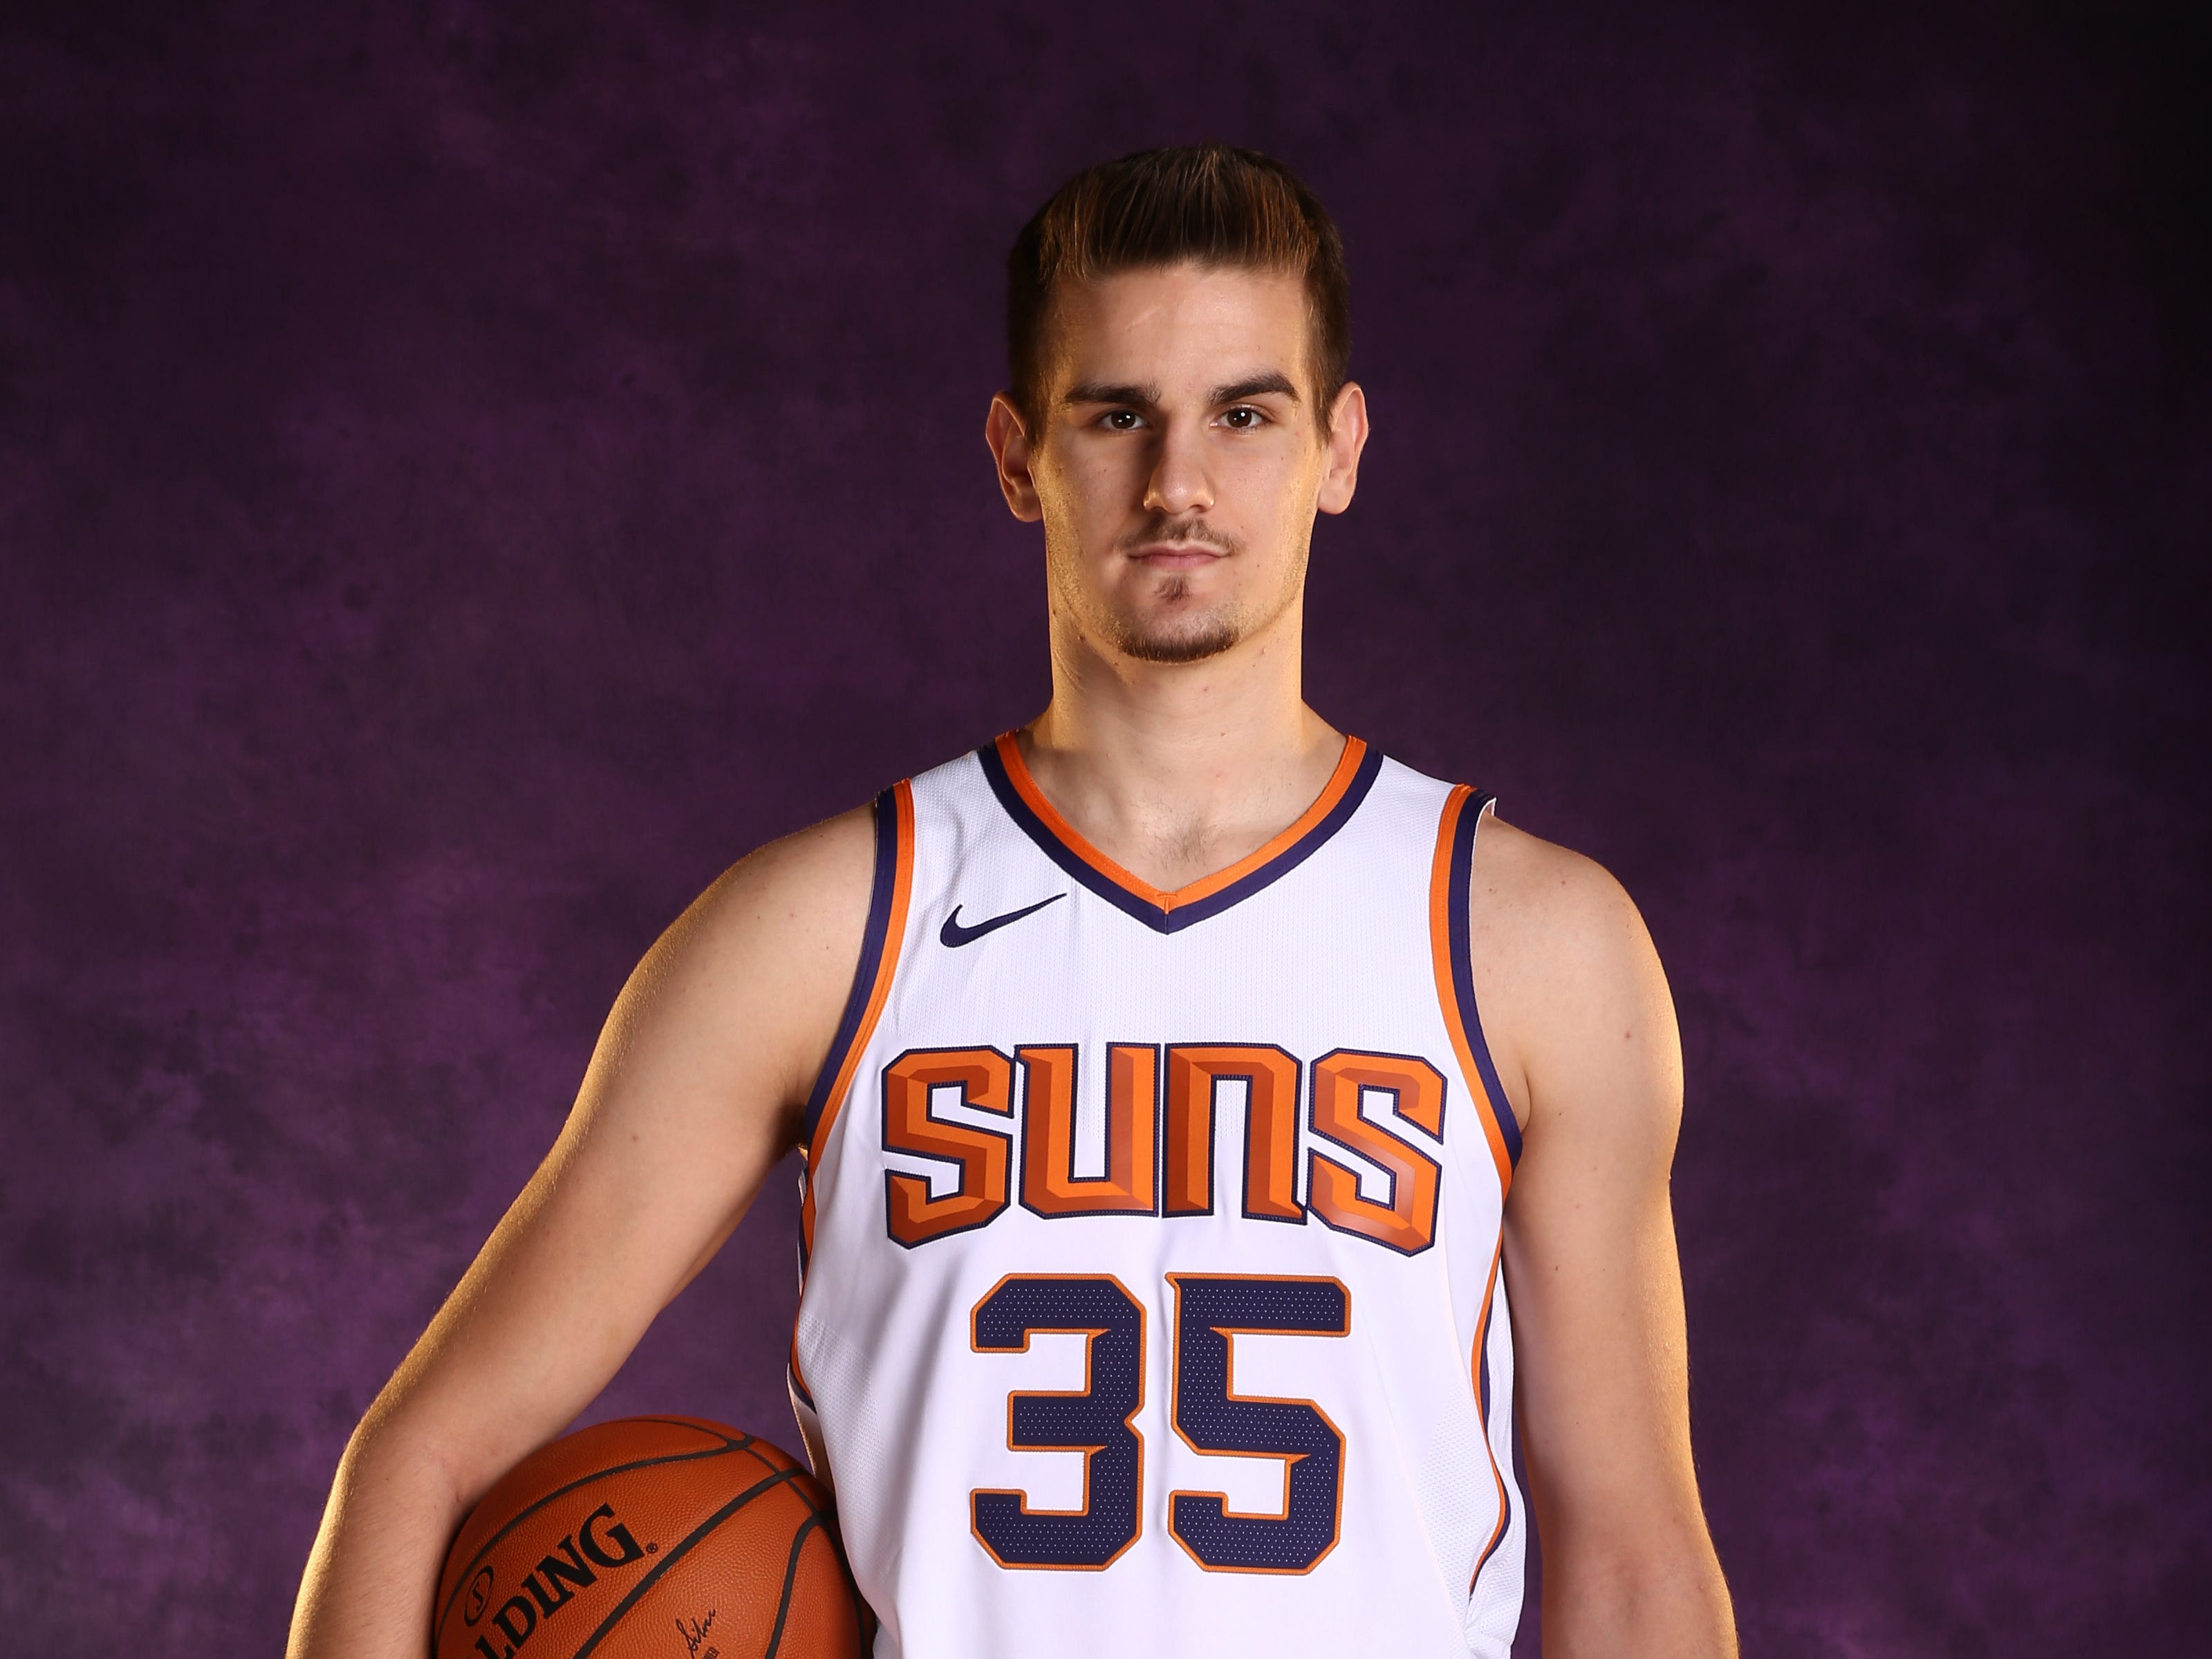 Phoenix Suns forward Dragan Bender during media day at Talking Stick Resort Arena on Sep. 24, 2018, in Phoenix, Ariz.